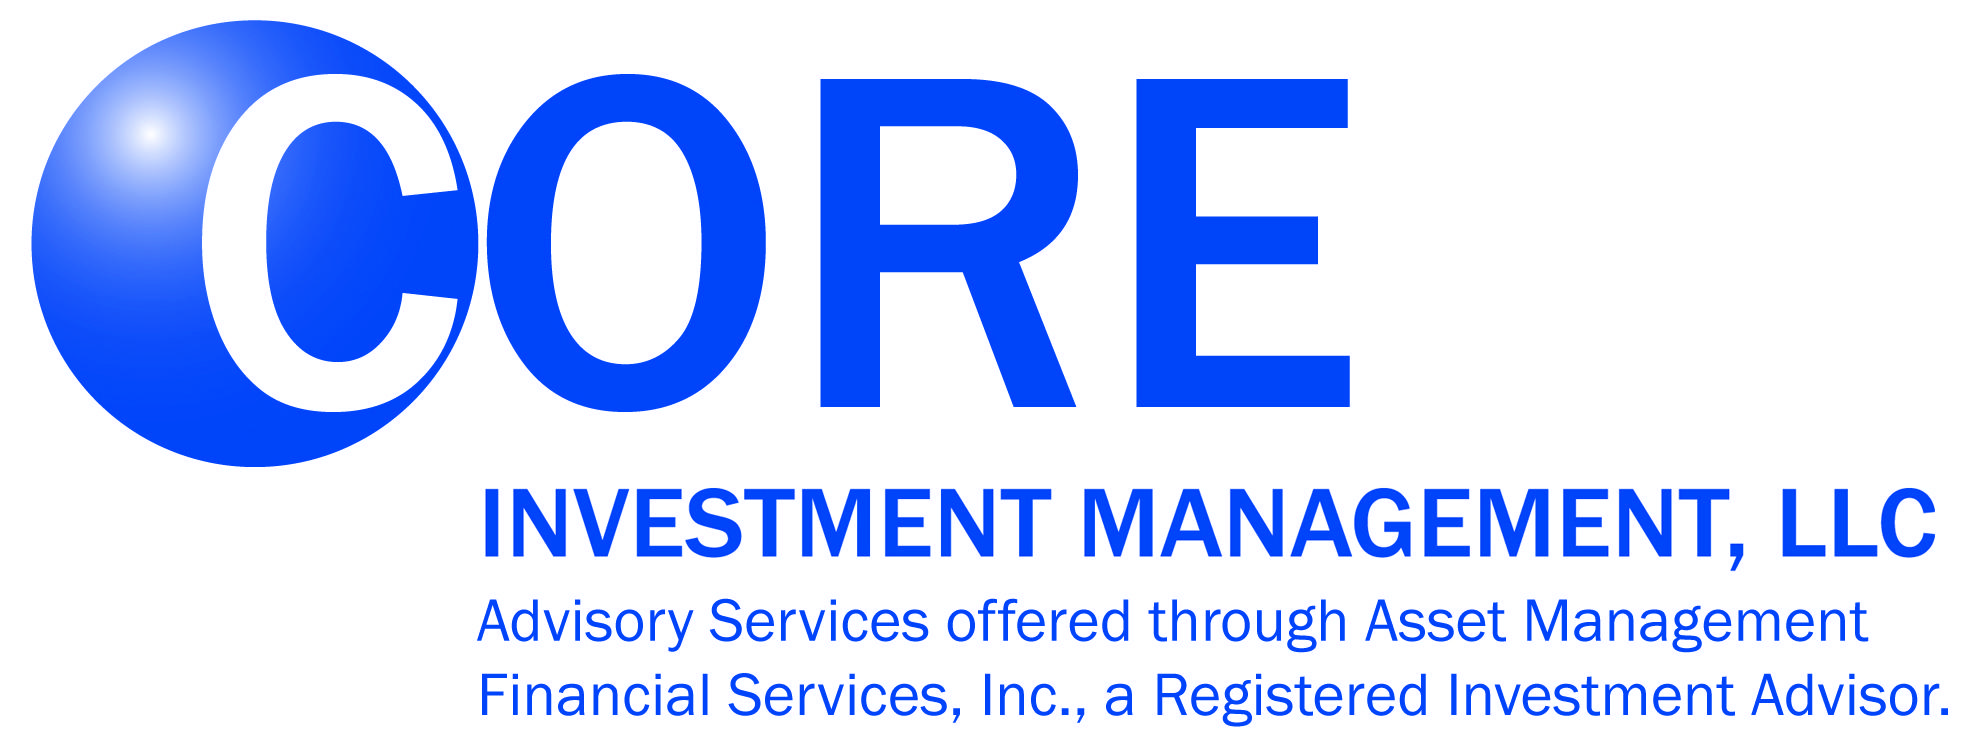 CORE Investment Management, LLC